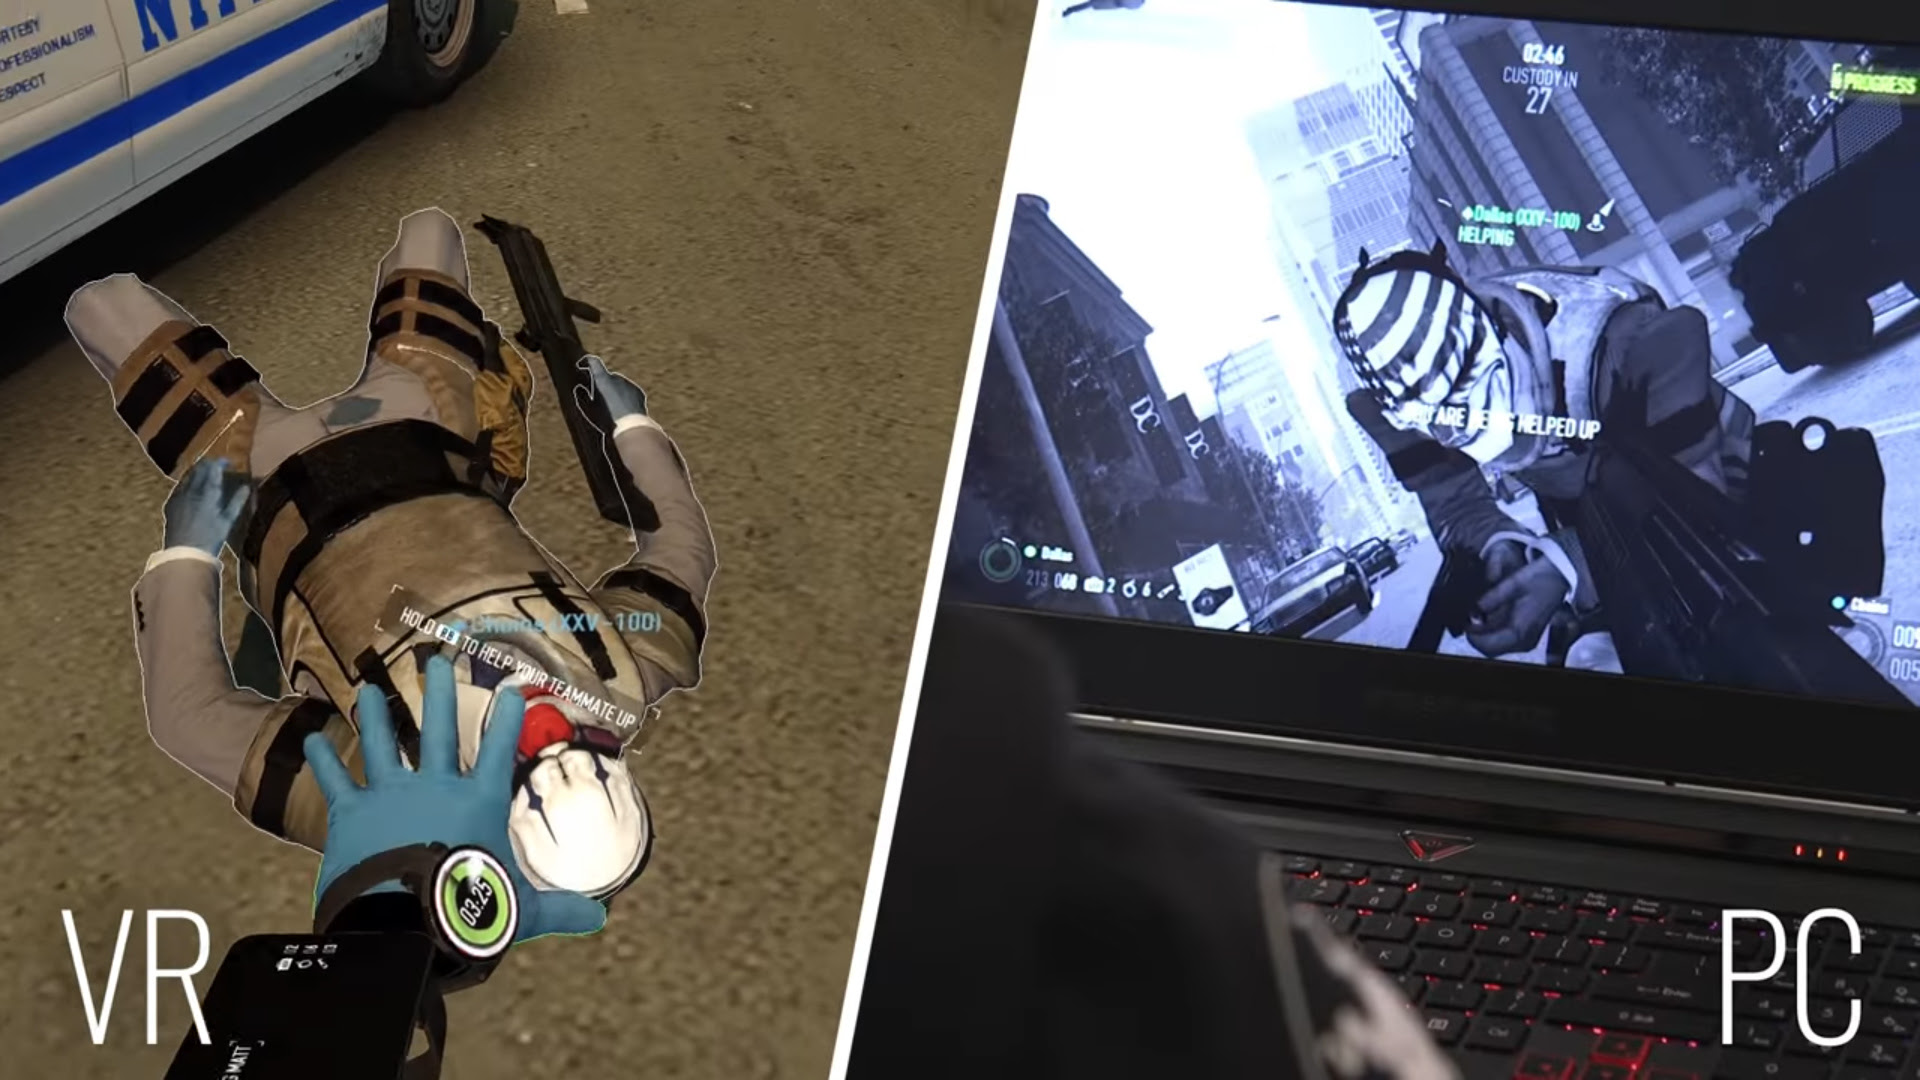 Payday VR is on the way with standard PC cross-play screenshot